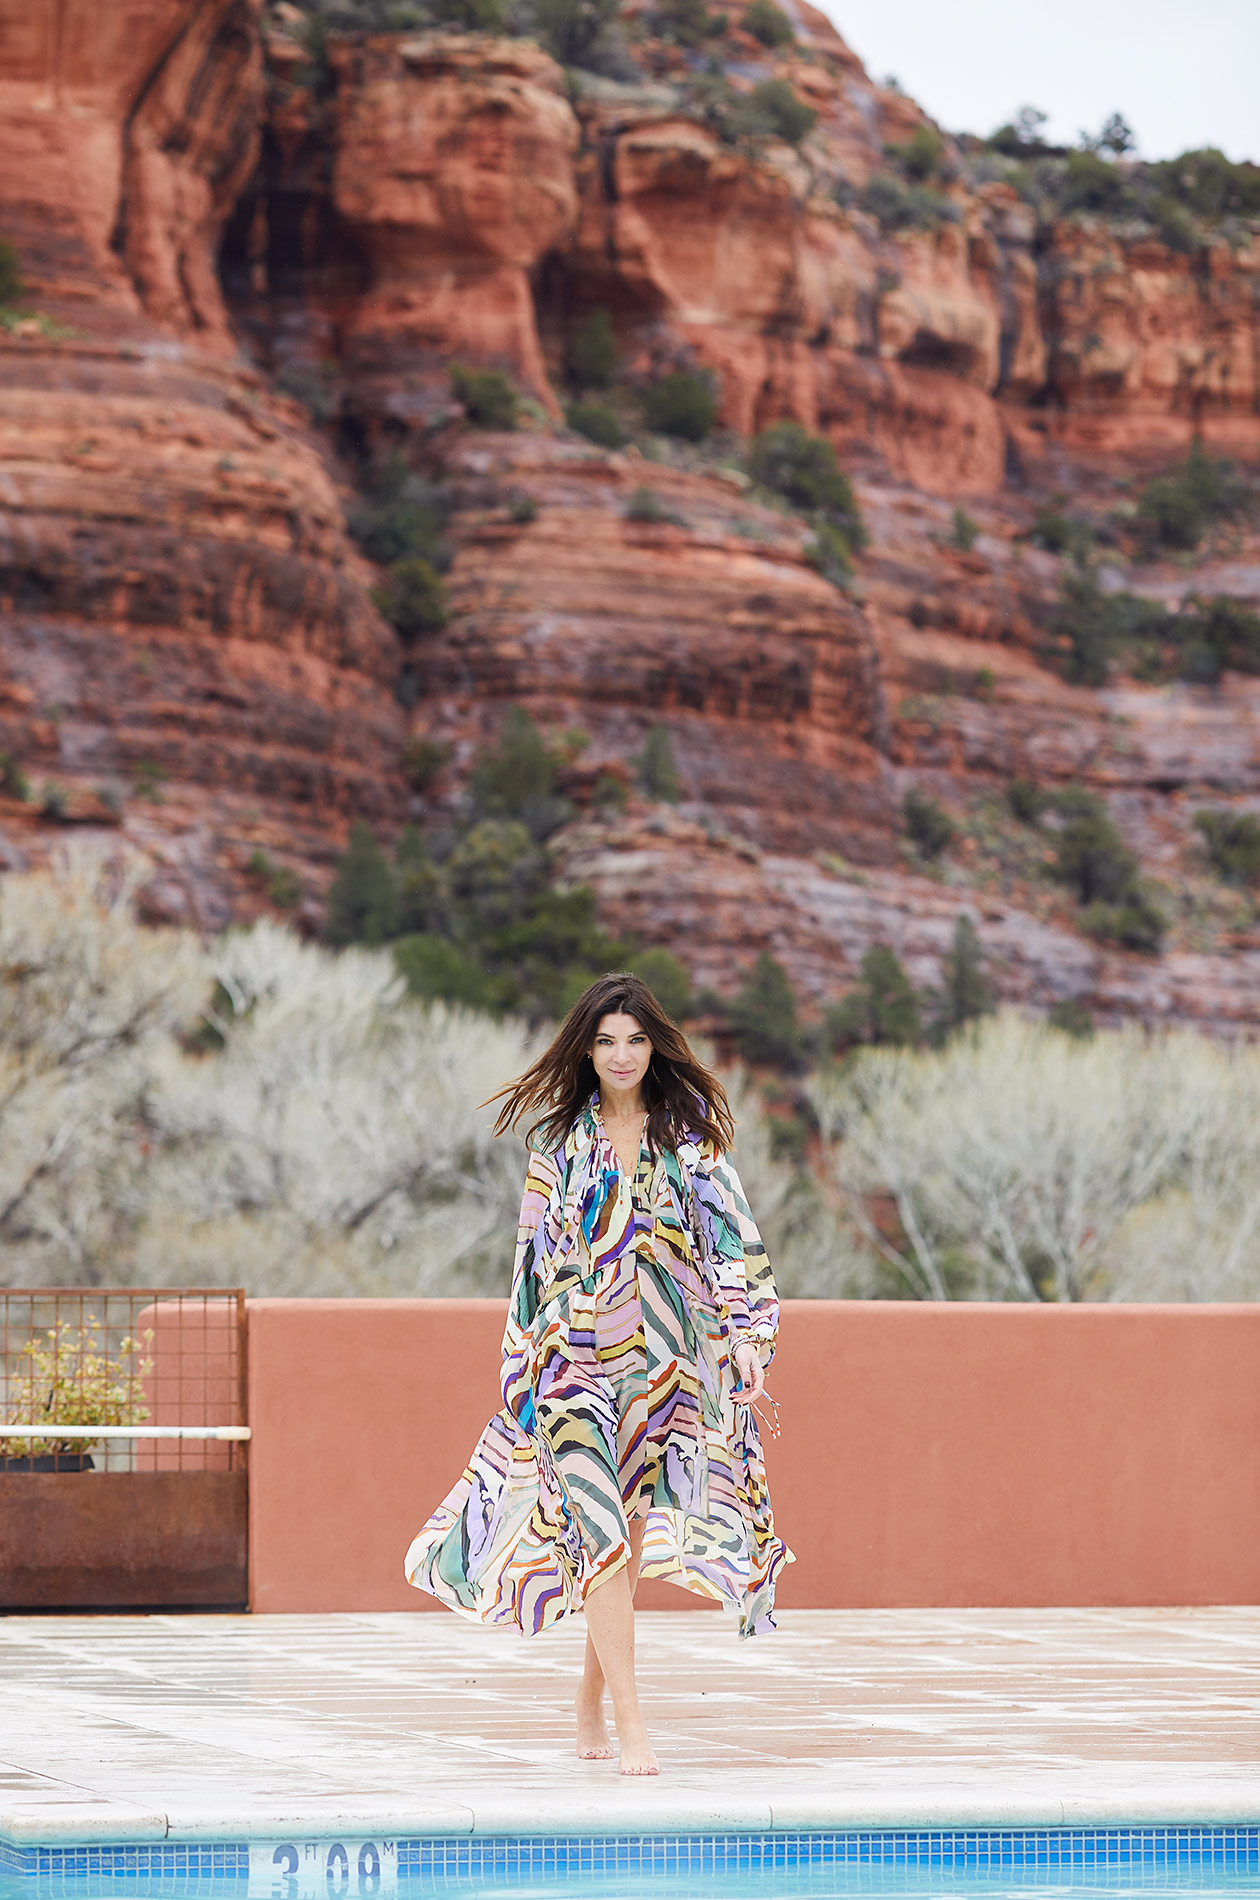 Monika Maresova for H&M - Steve Craft Photography - Phoenix Arizona Advertising Photographer